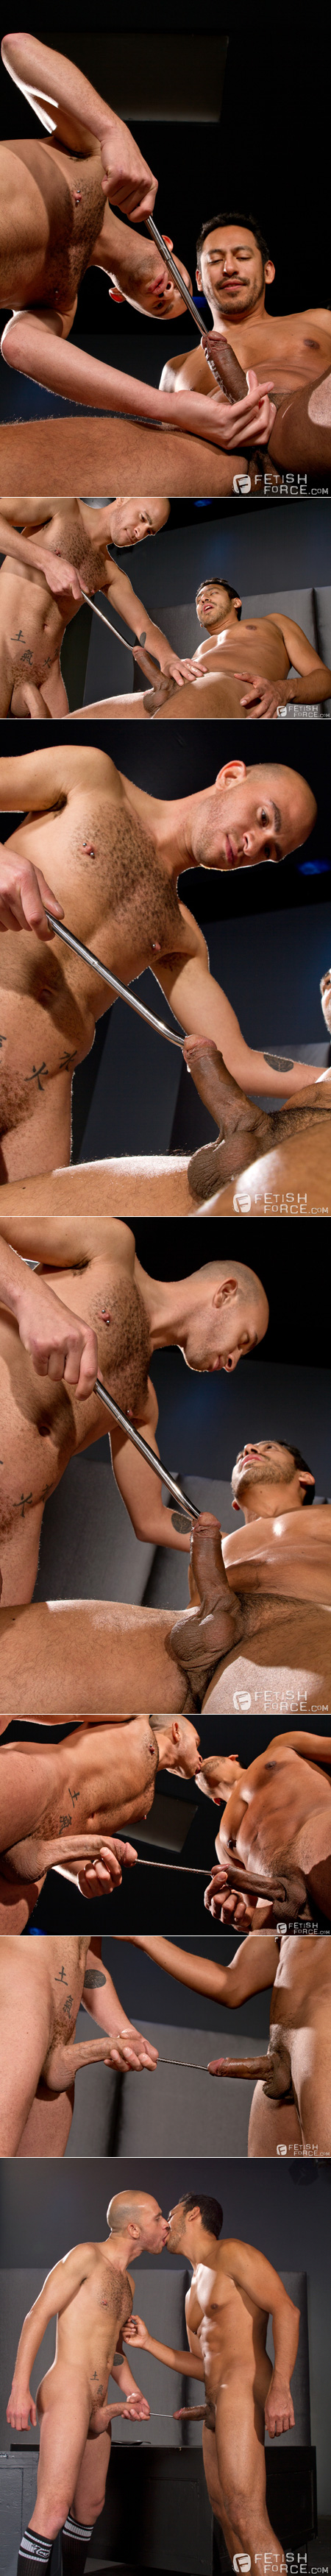 Hardcore gay men linking their cocks together with urethral sounds.